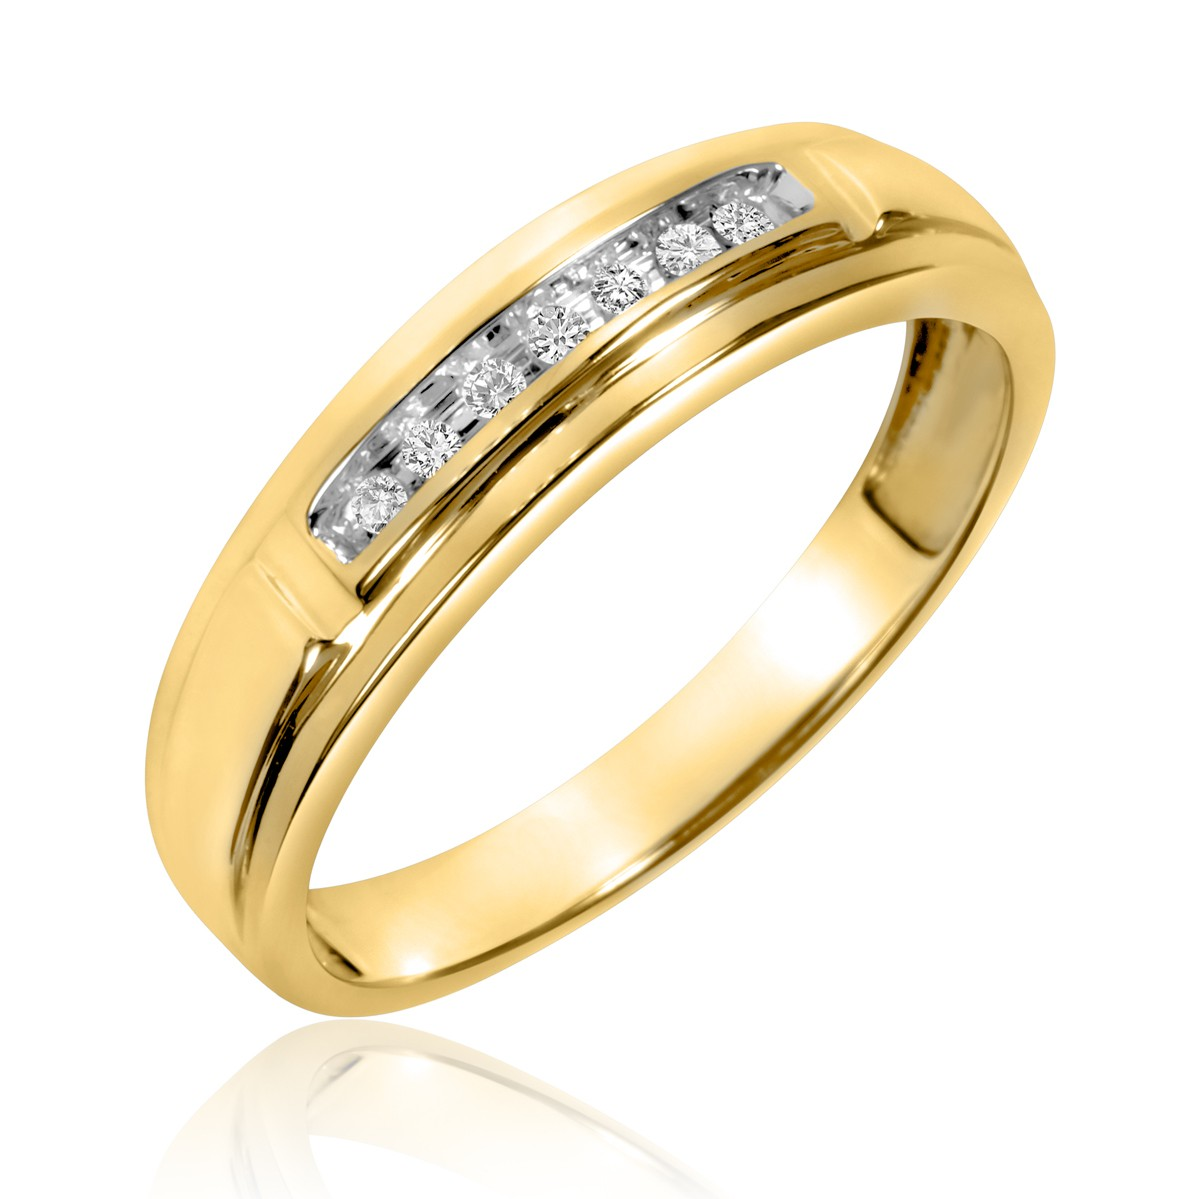 1/15 Carat T.W. Diamond Men's Wedding Band 14K Yellow Gold